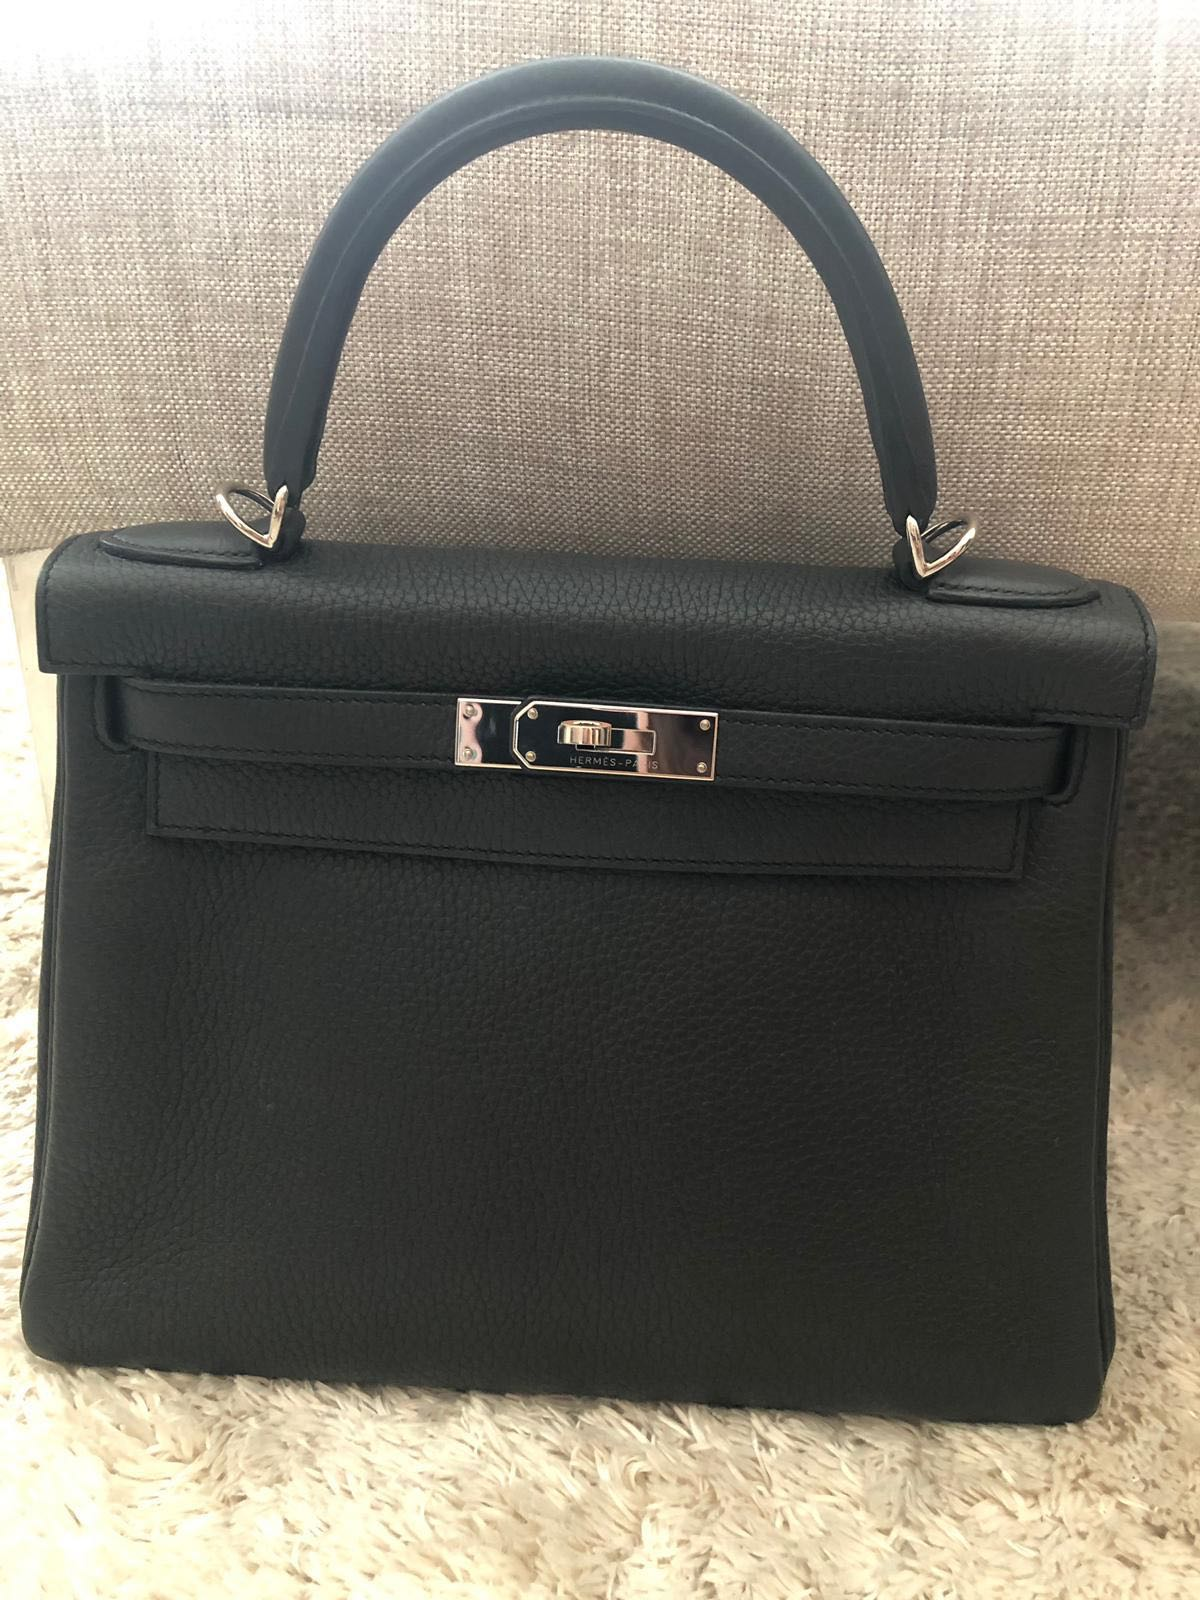 73017051090a Hermes Kelly 28 retourne in Plomb PHW  T Clemence